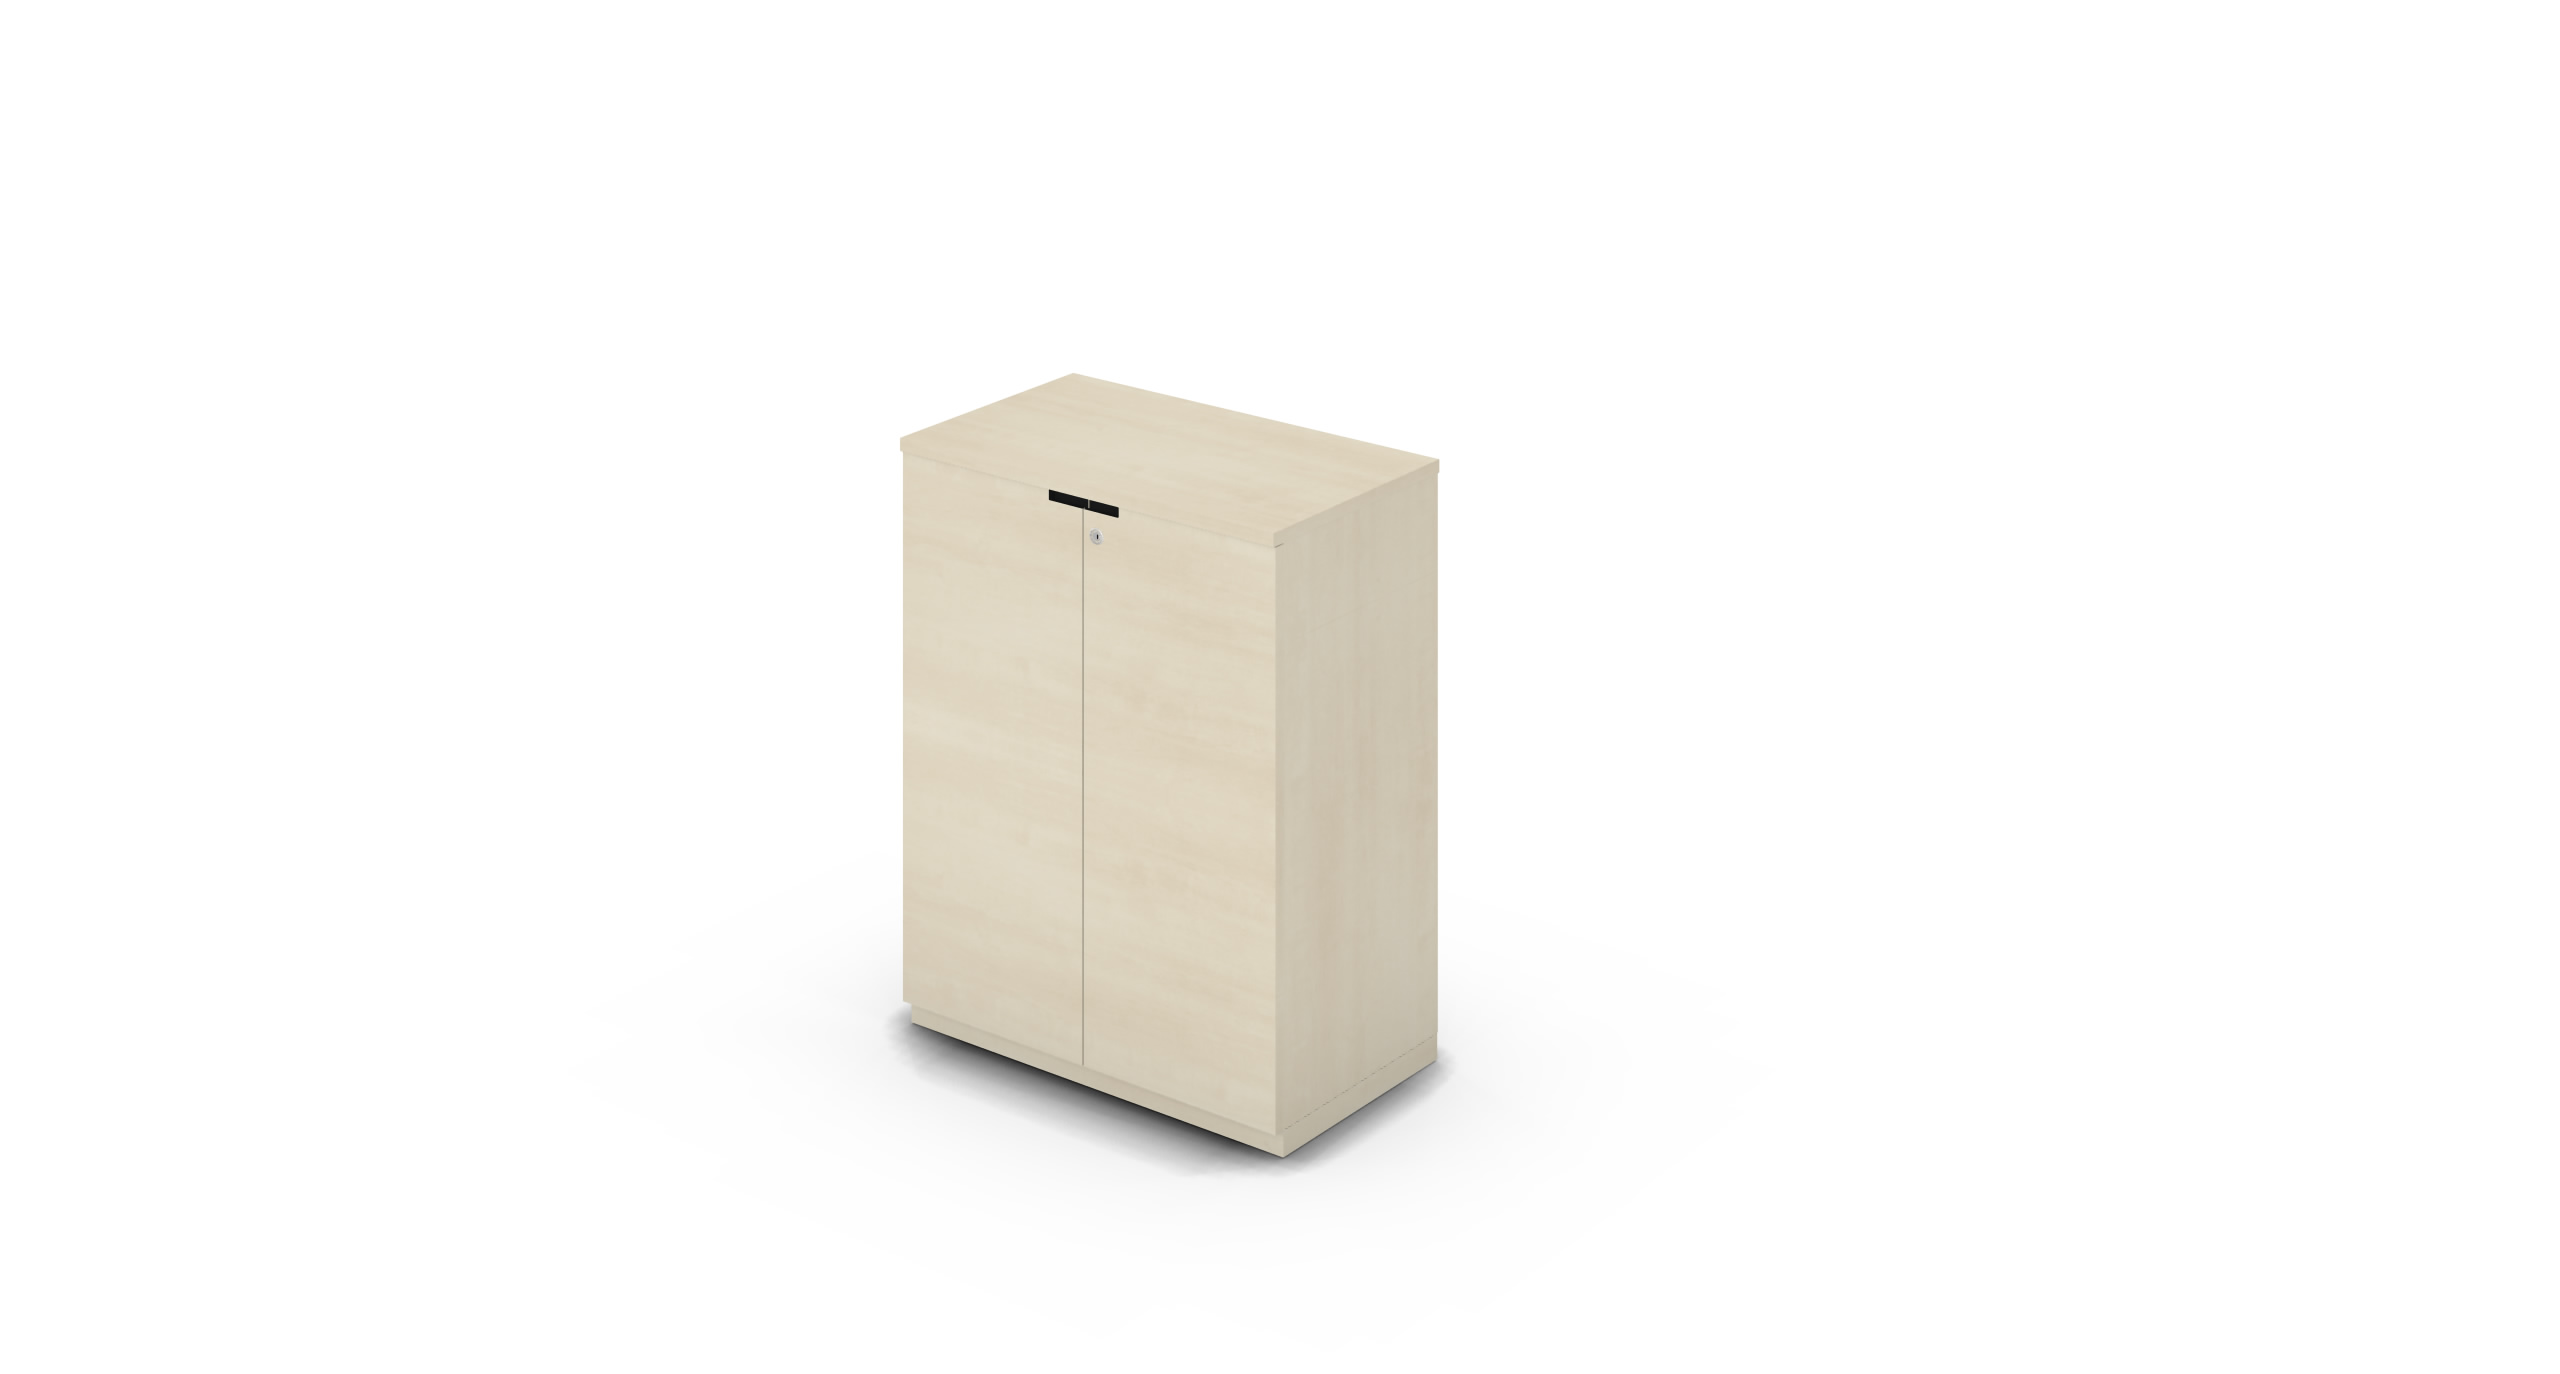 Cabinet_800x450x1125_HD_Maple_CutOut_WithCylinder